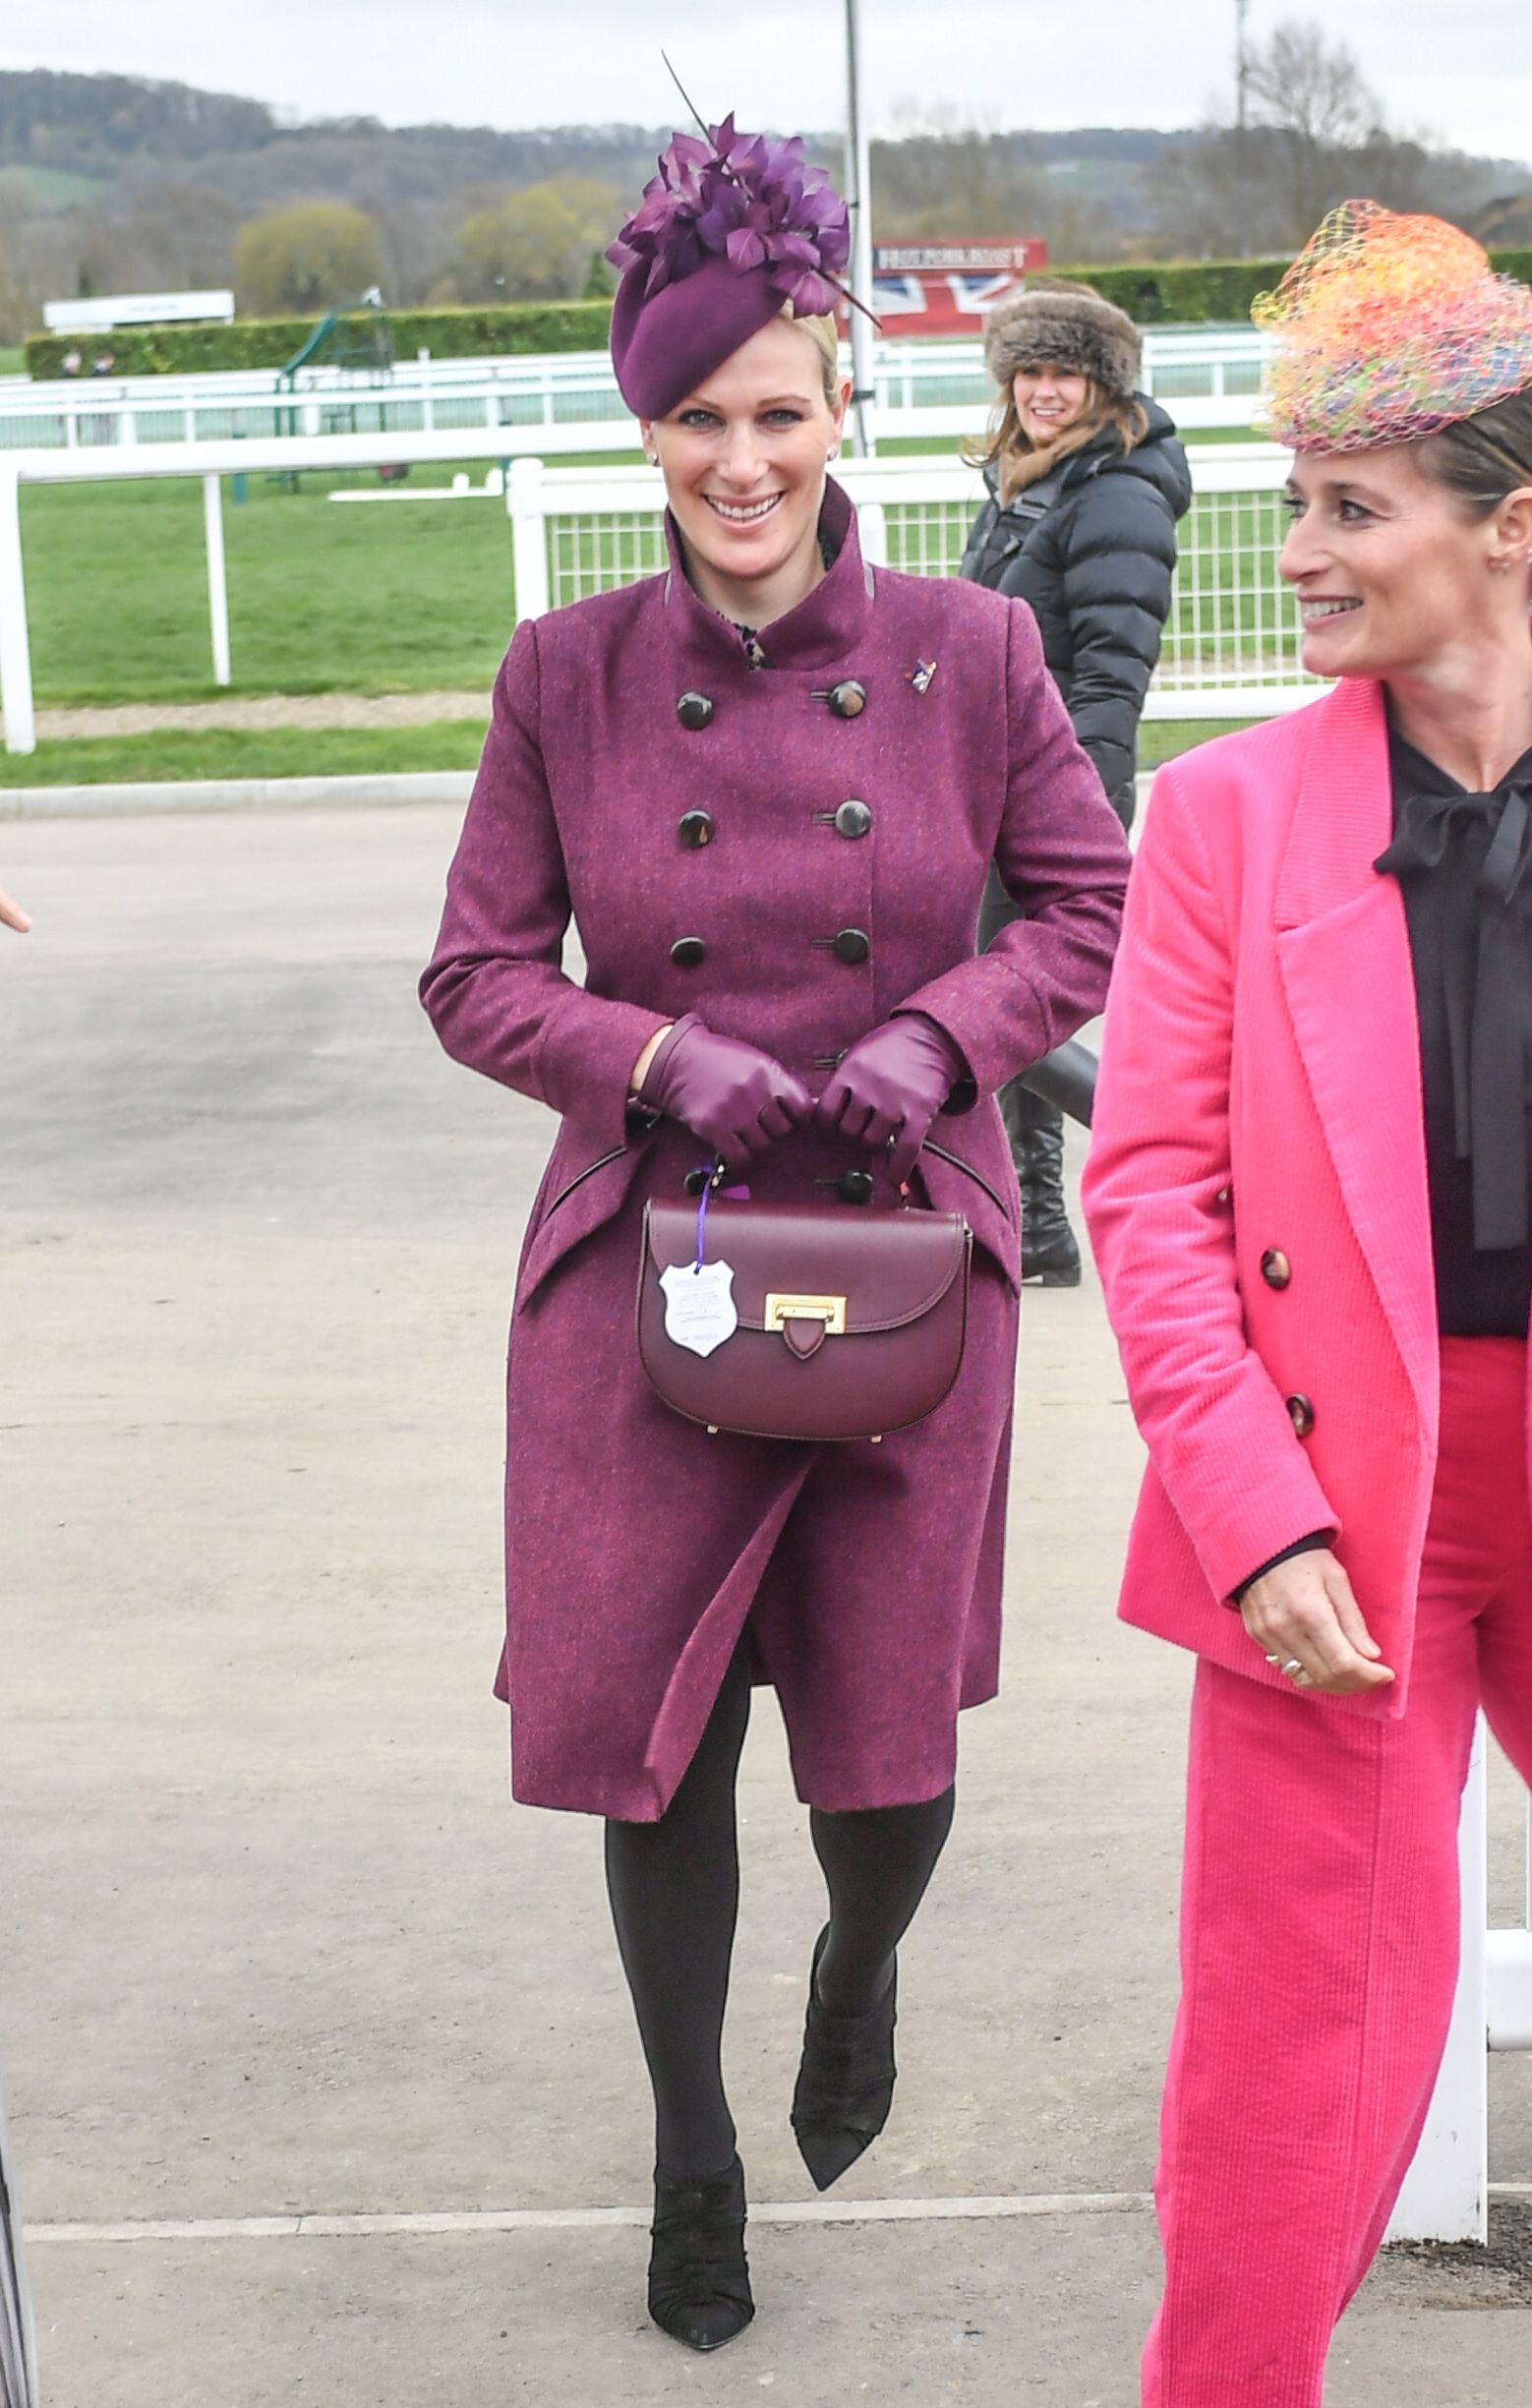 0c4e58c37f6e Zara Tindall's Best Style Moments - Queen Elizabeth's Granddaughter Zara  Phillips Pictures